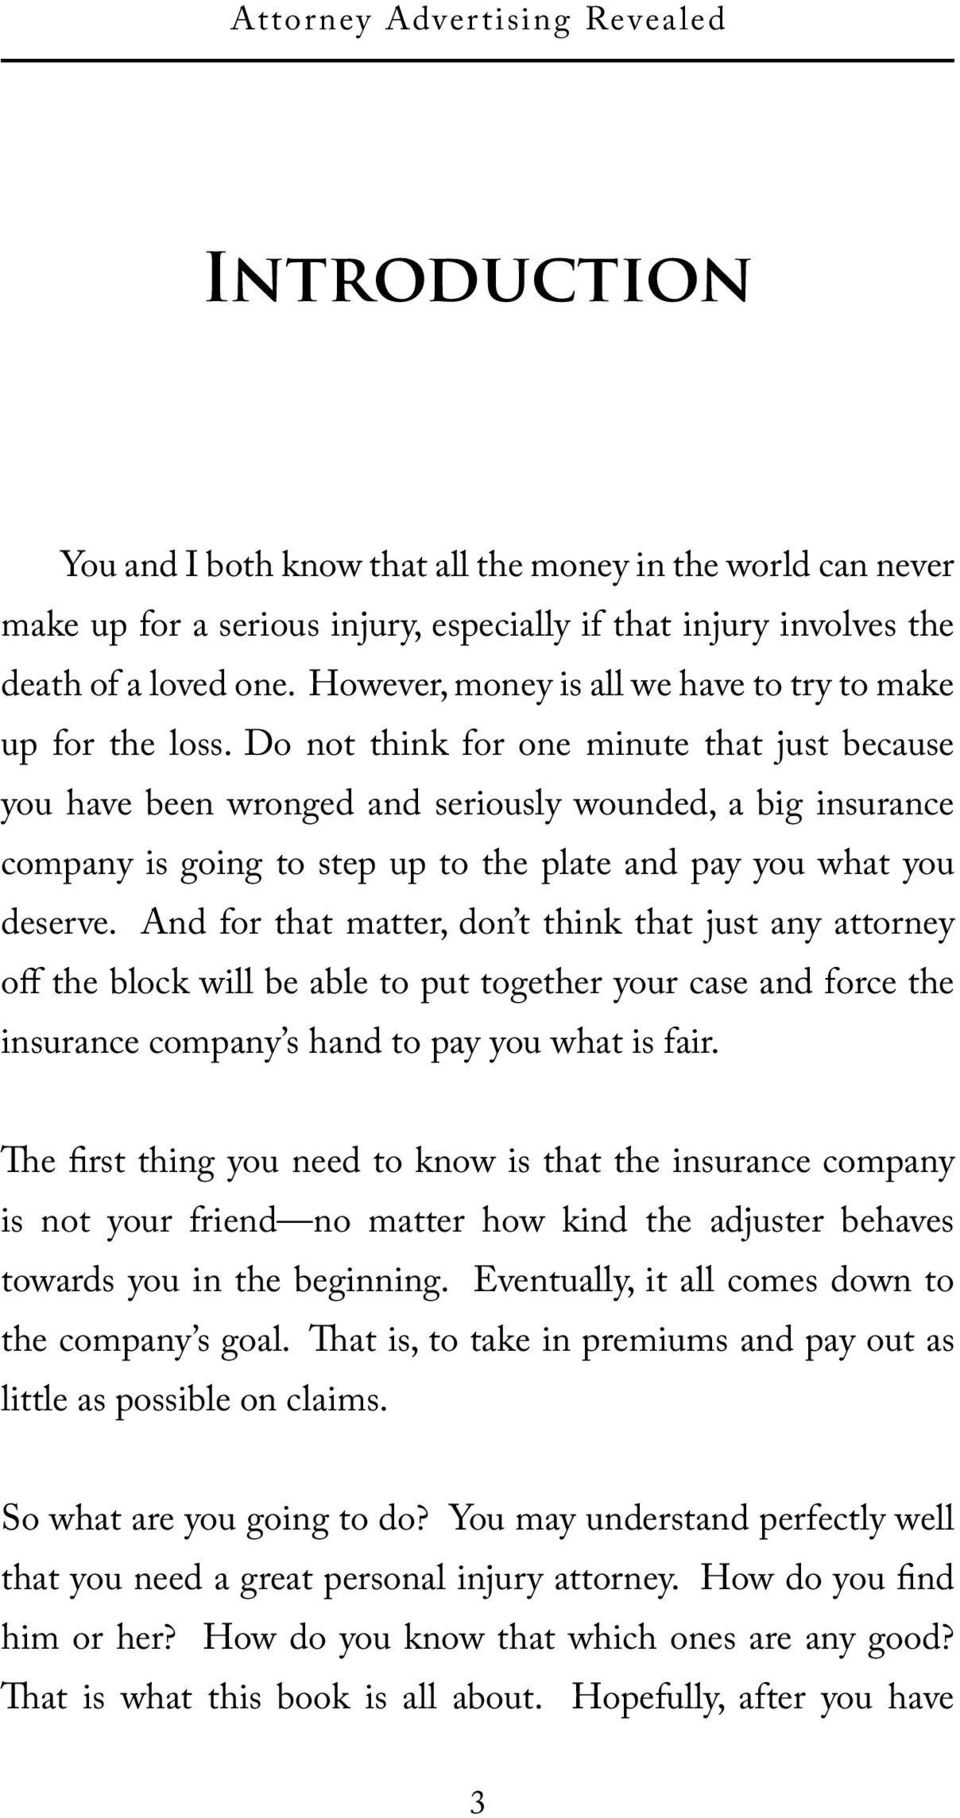 Do not think for one minute that just because you have been wronged and seriously wounded, a big insurance company is going to step up to the plate and pay you what you deserve.